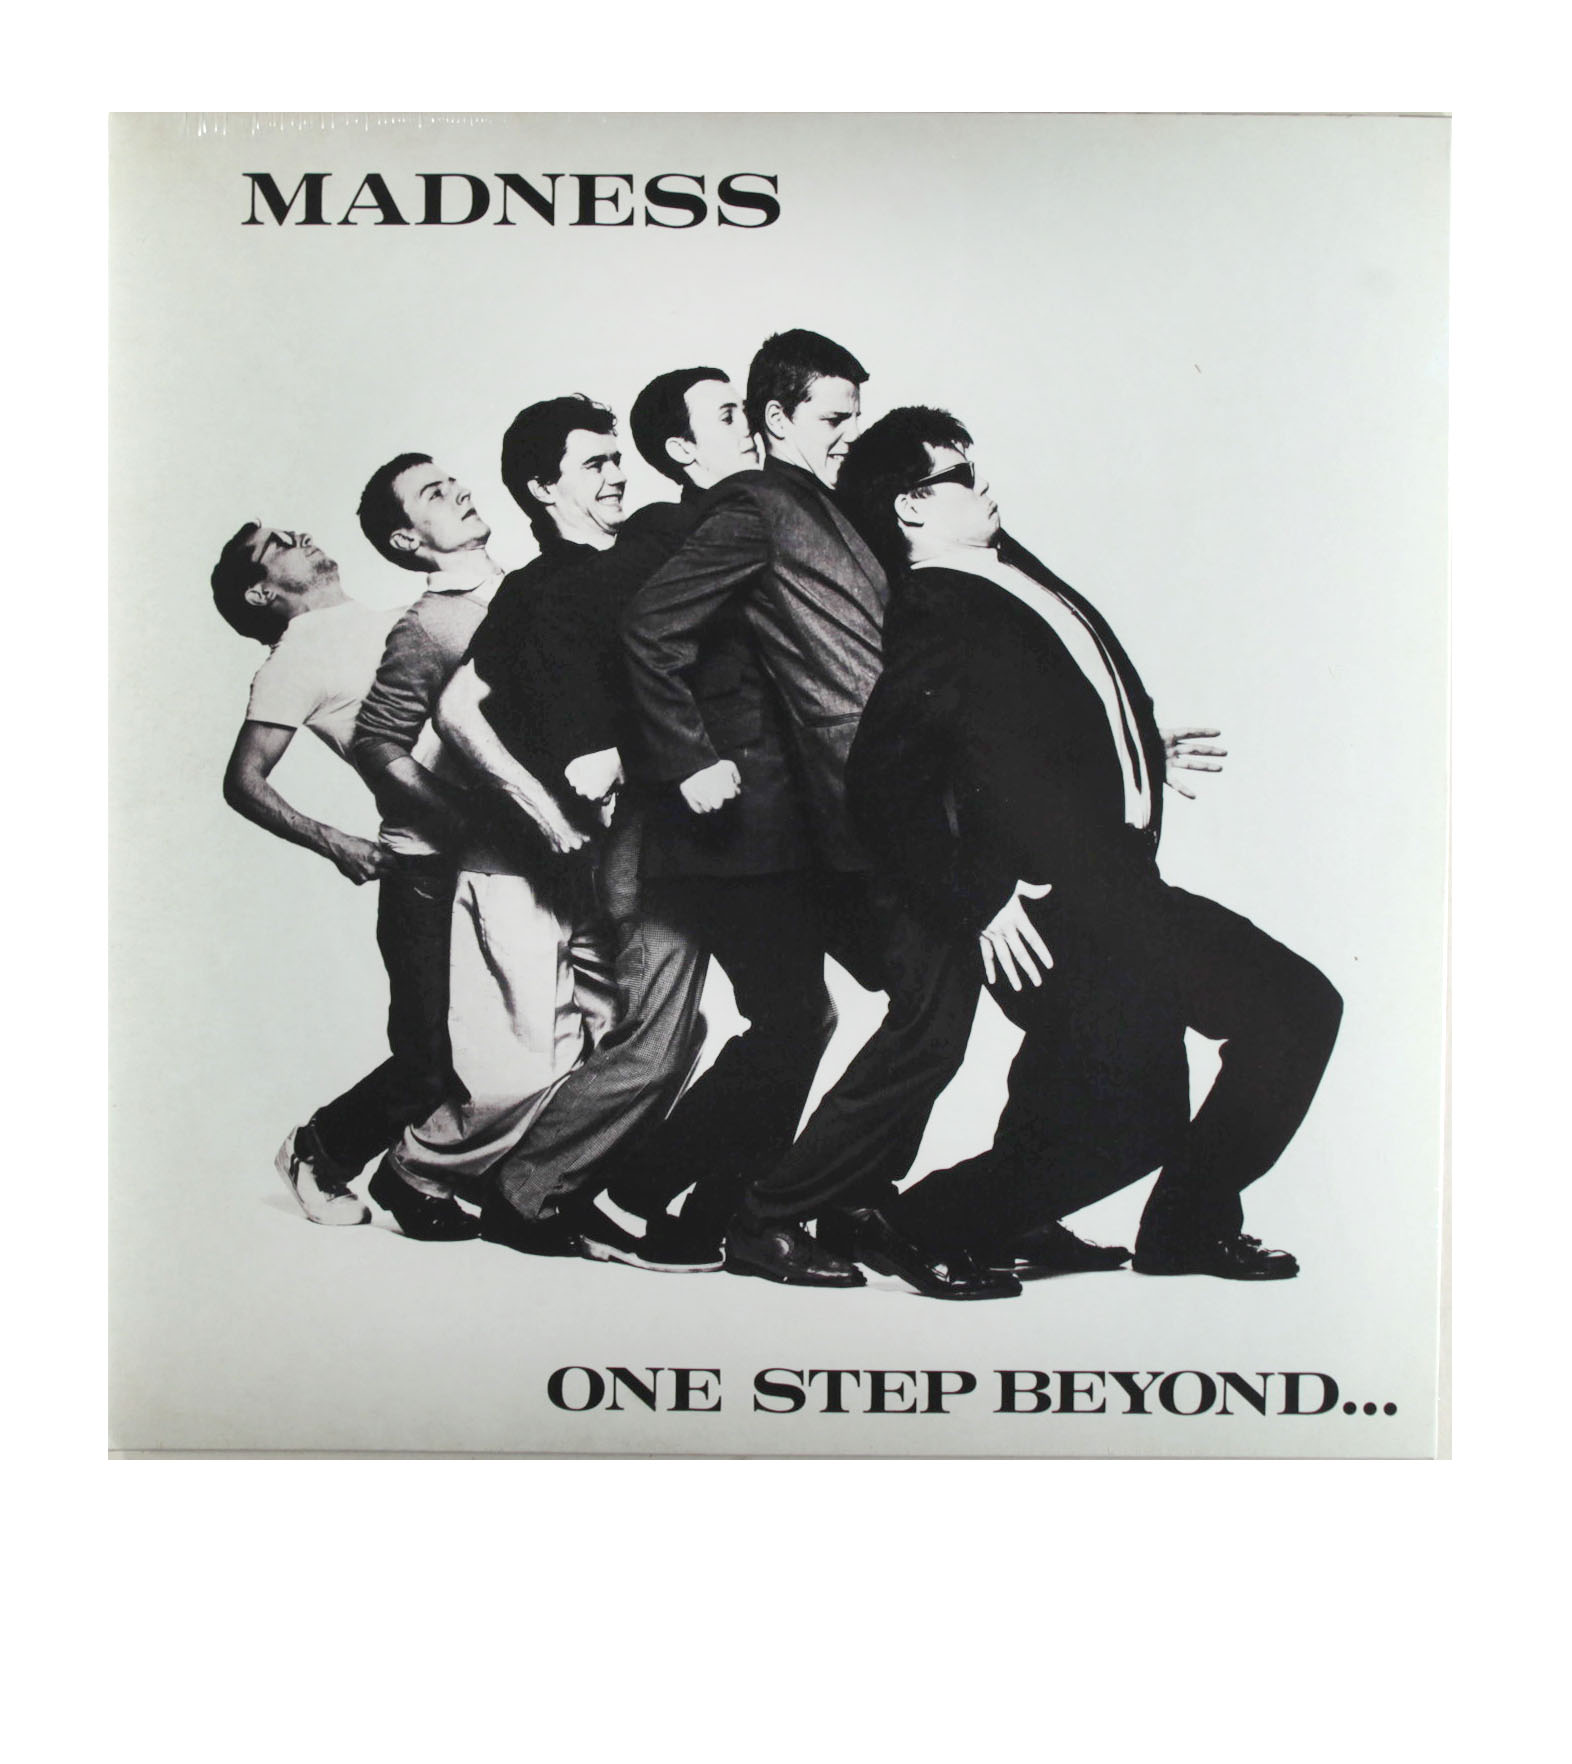 madness-one-step-beyond-limited-edition-180g-white-vinyl-2383-p